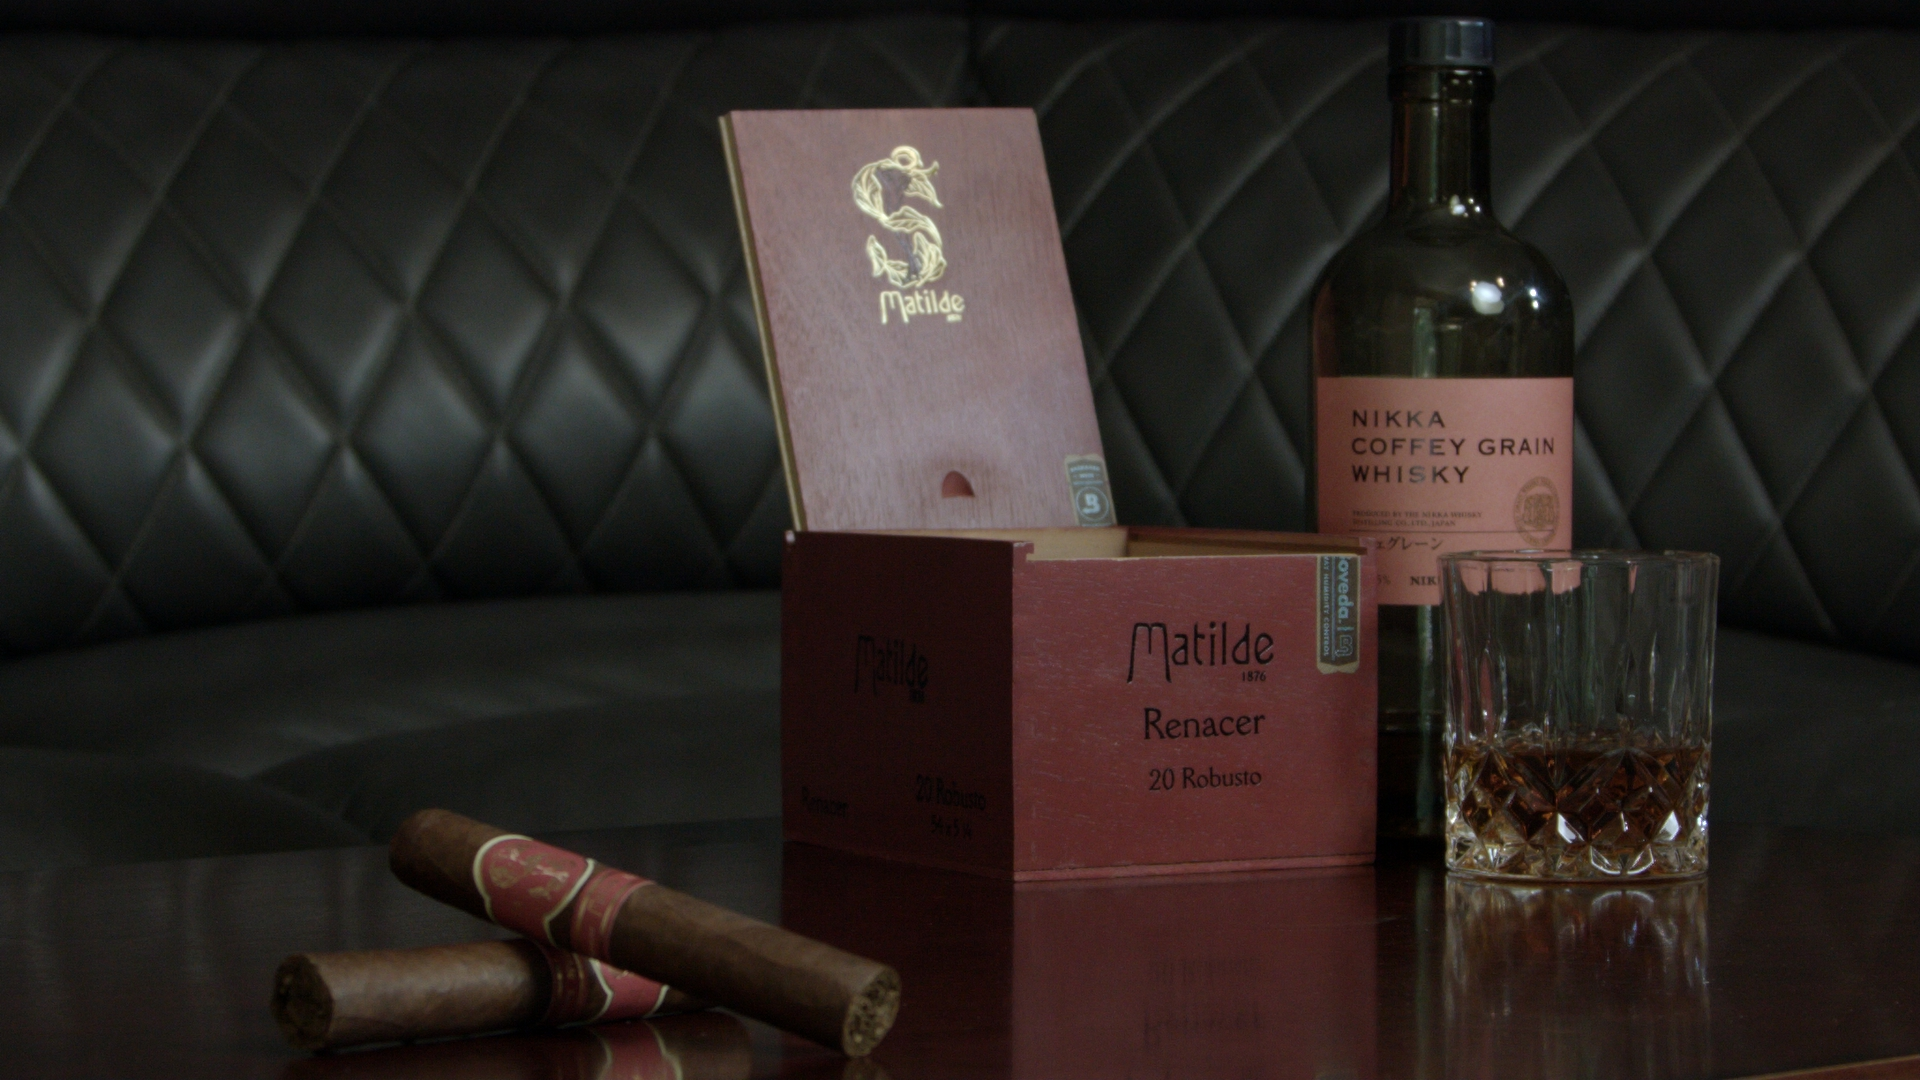 matilde robusto cigars shown on a table next to their open box and bottle and glass of nikka coffey grain whisky